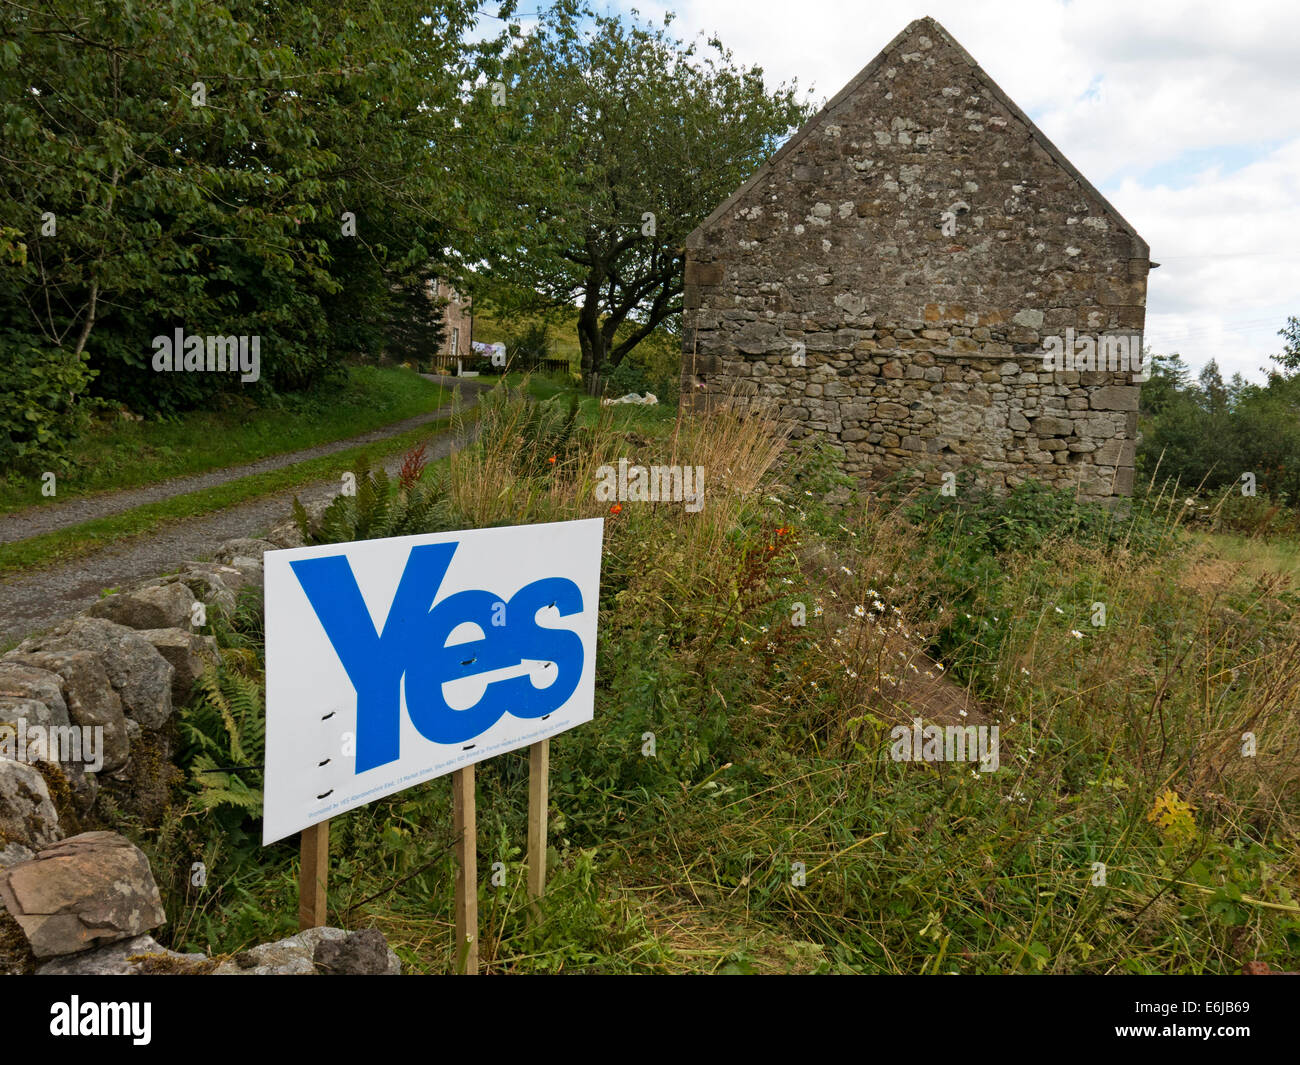 Alex,Salmond,Braveheart,vote,voter,voters,voting,Borders,of,Scotland,alastair,darling,2014,sep,september,strength,of,feeling,SNP,National,Party,in,my,field,town,village,support,supporter,supporting,homemade,hand,made,handmade,GB,Great,Britain,empire,break,up,breakup,split,splits,gotonysmith,City,of,Glasgow City,of,Edinburgh Fife North,Lanarkshire South,Lanarkshire Aberdeenshire Highland City,of,Aberdeen West,Lothian Renfrewshire Falkirk Dumfries,and,Galloway Perth,and,Kinross City,of,Dundee North,Ayrshire East,Ayrshire Scottish,Borders South,Ayrshire Angus East,Dunbartonshire East,Lothian West,Dunbartonshire Stirling East,Renfrewshire Argyll,and,Bute Moray Midlothian Inverclyde Clackmannanshire Na,h-Eileanan,Siar,(Western,Isles) Shetland,Islands Orkney,Islands,CNES,people,of,referendum,decide,decides,yessign